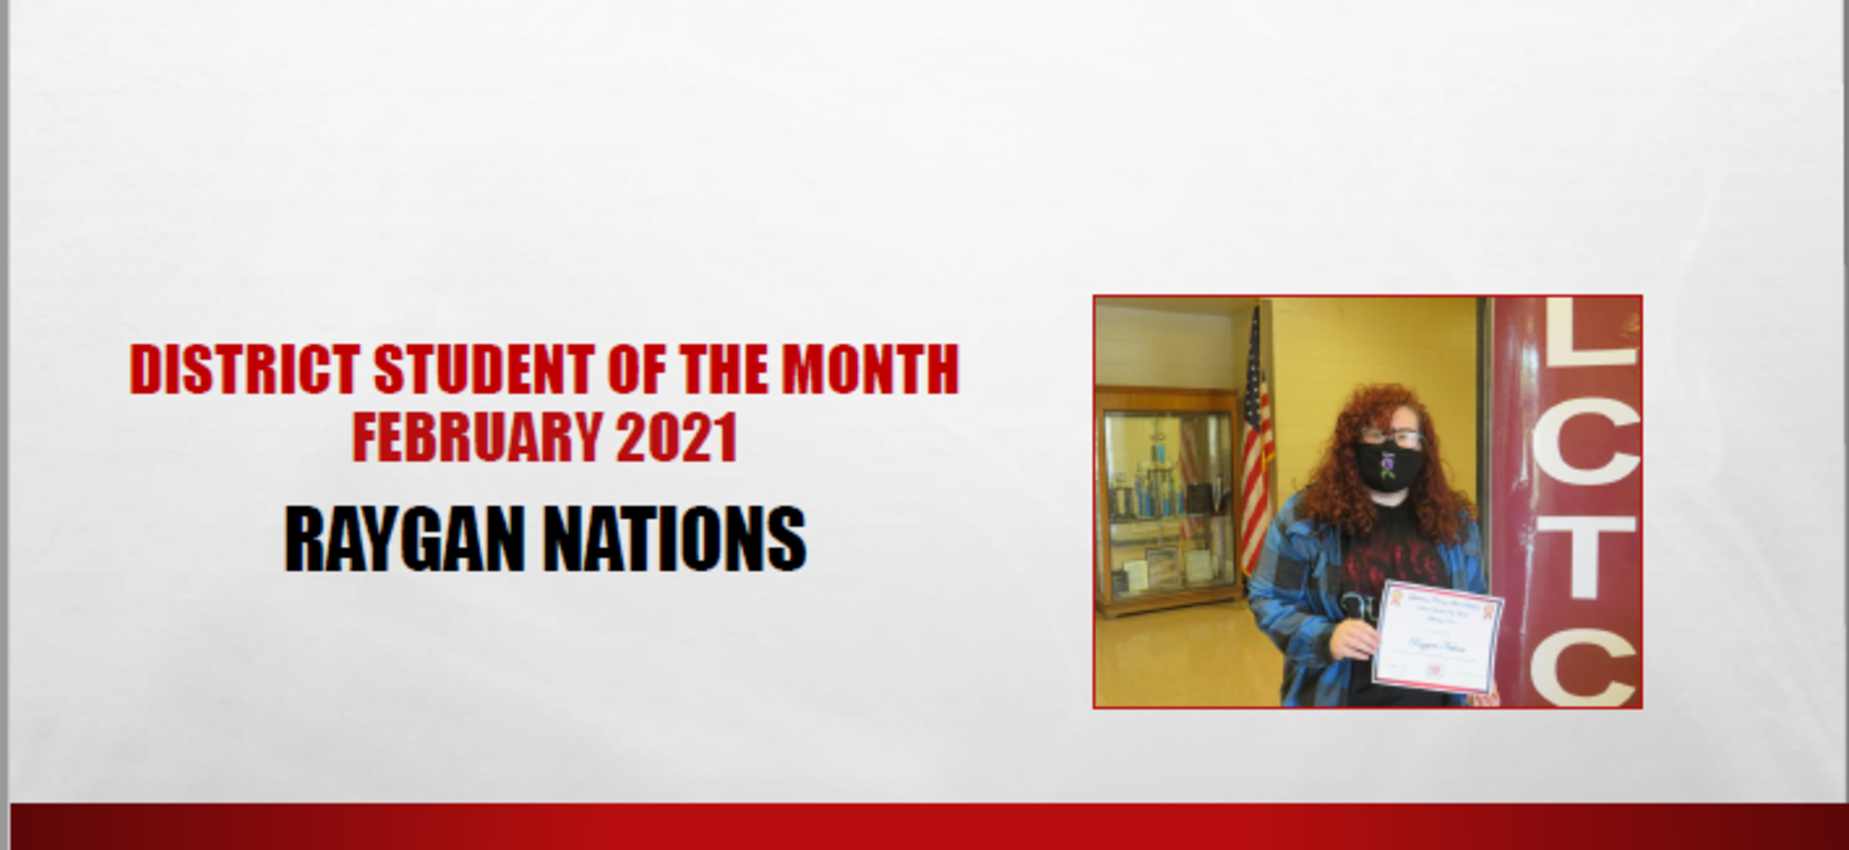 February 2021 District Student of the Month Raygan Nations